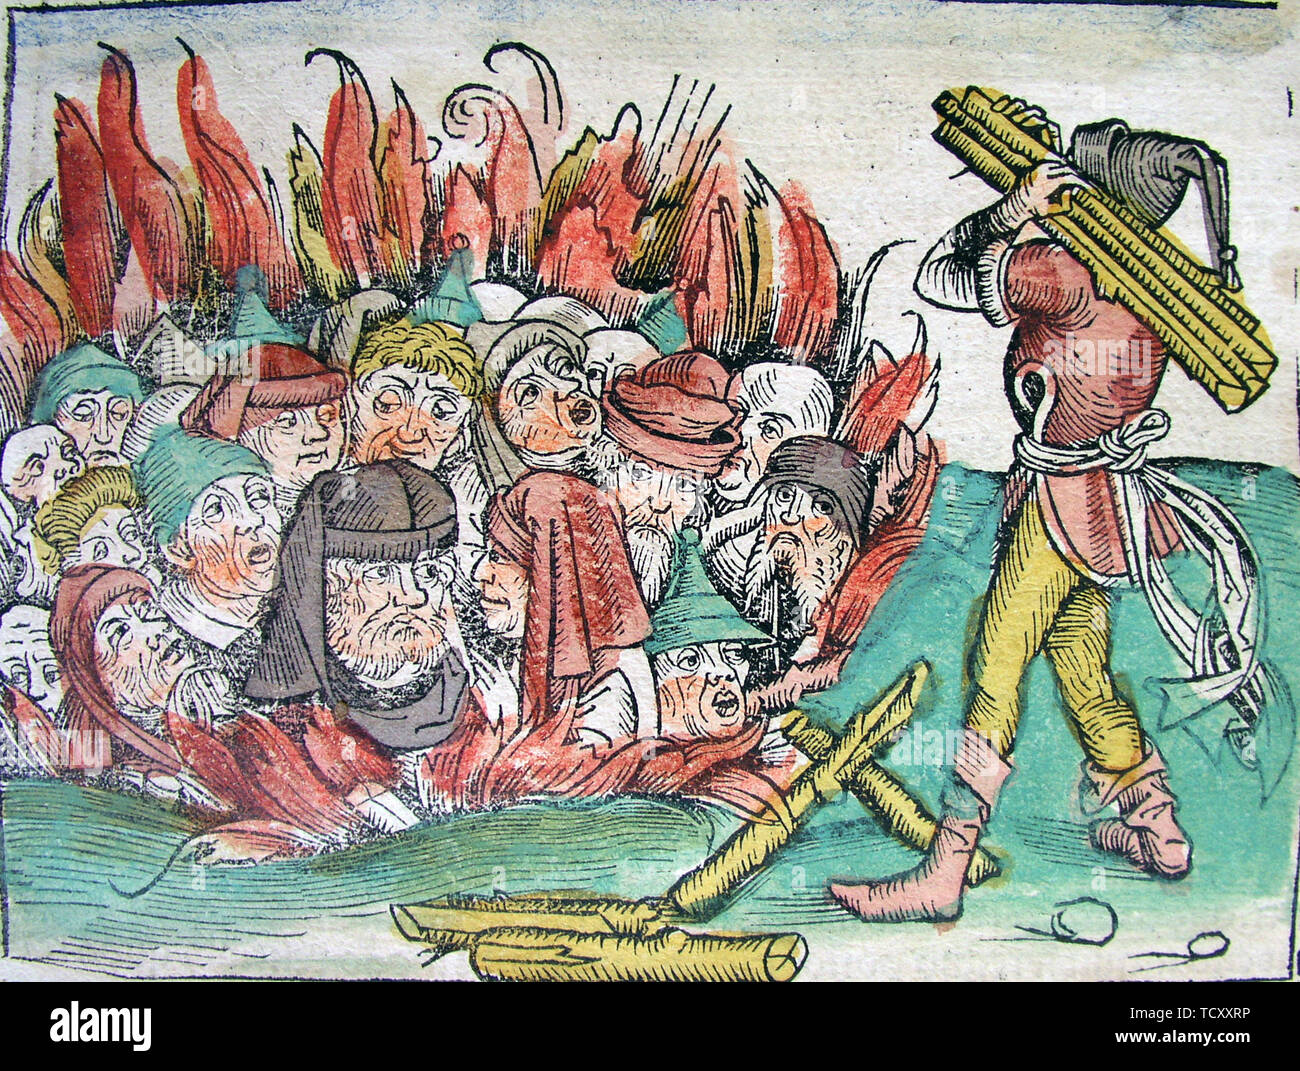 Burning of the Jews at Deggendorf in 1338 (from the Schedel's Chronicle of the World), 1493. Private Collection. - Stock Image